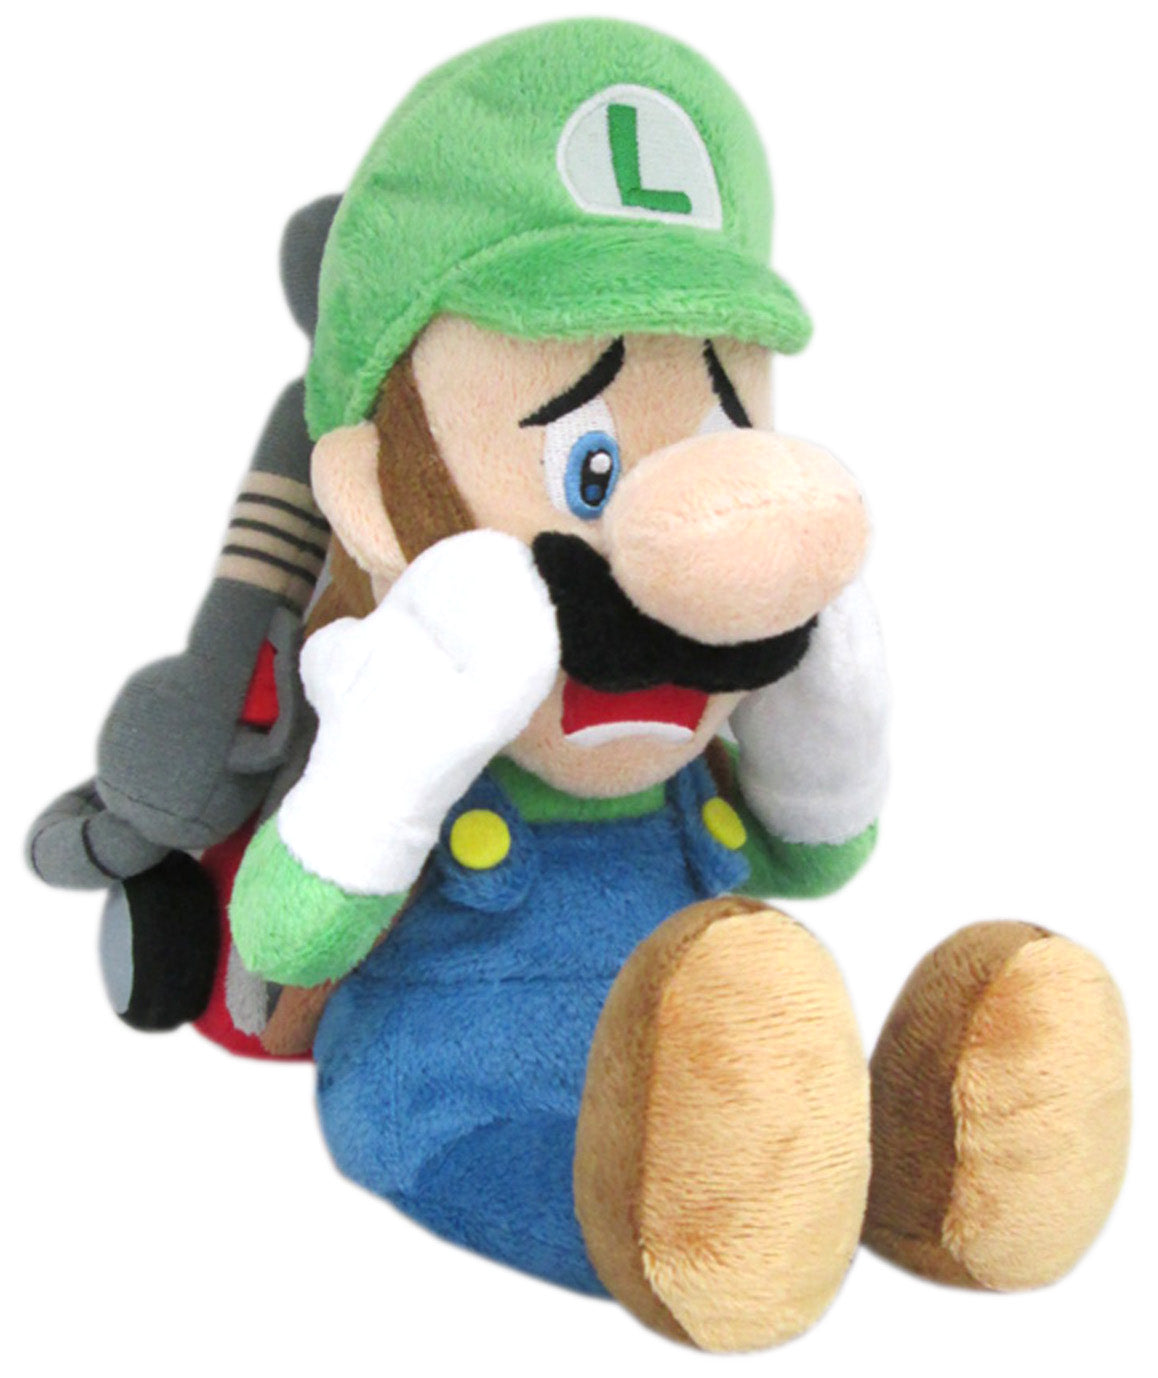 Little Buddy Luigi's Mansion Scared Luigi with Strobulb Plush 10""